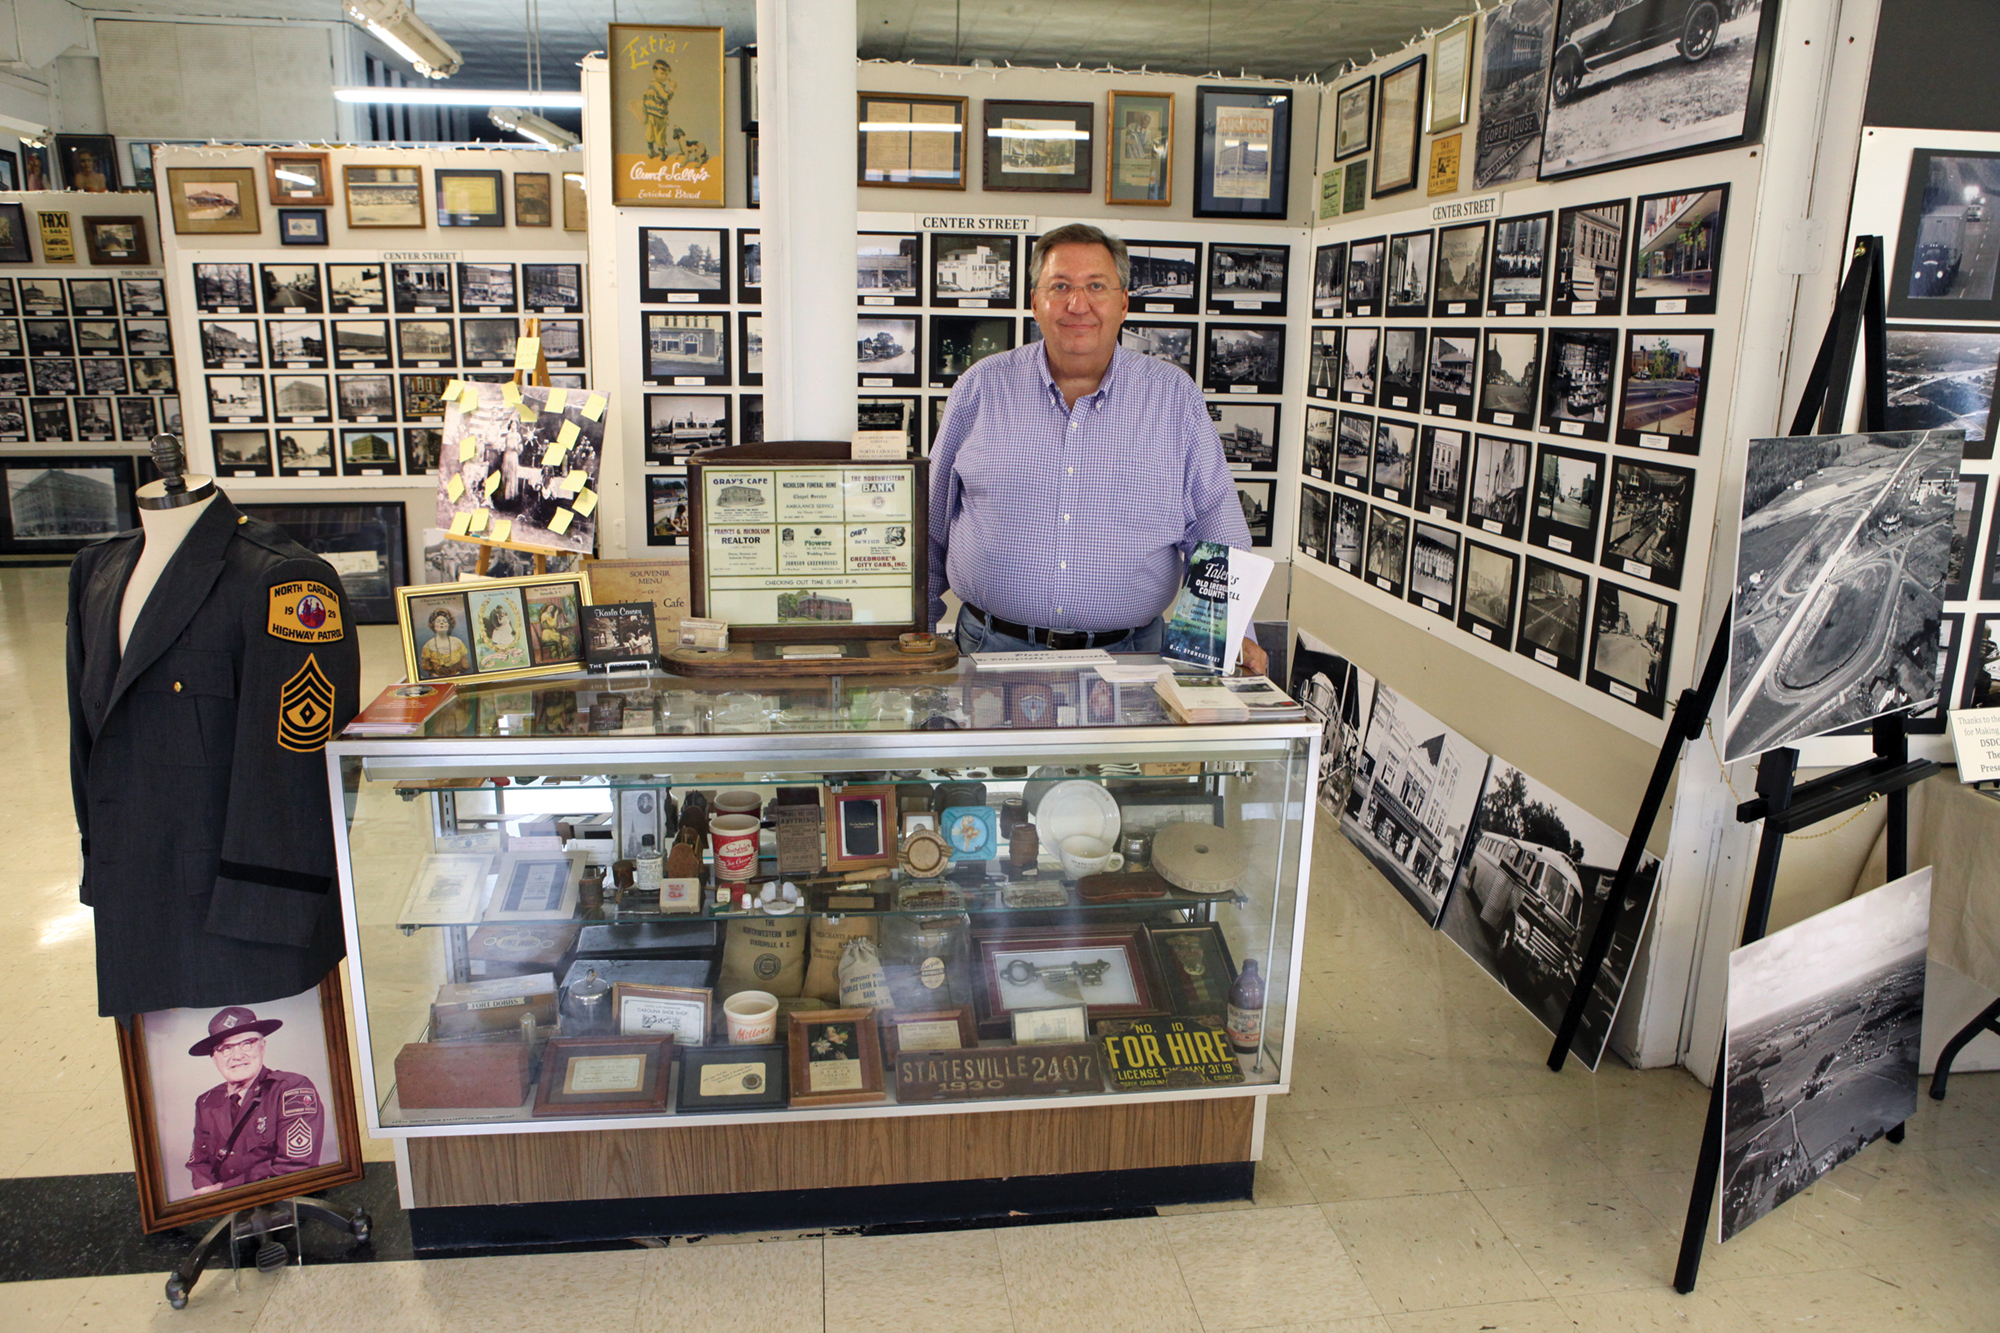 Steve Hill at the Statesville Historical Collection collects photos that show a glimpse of the town's past.